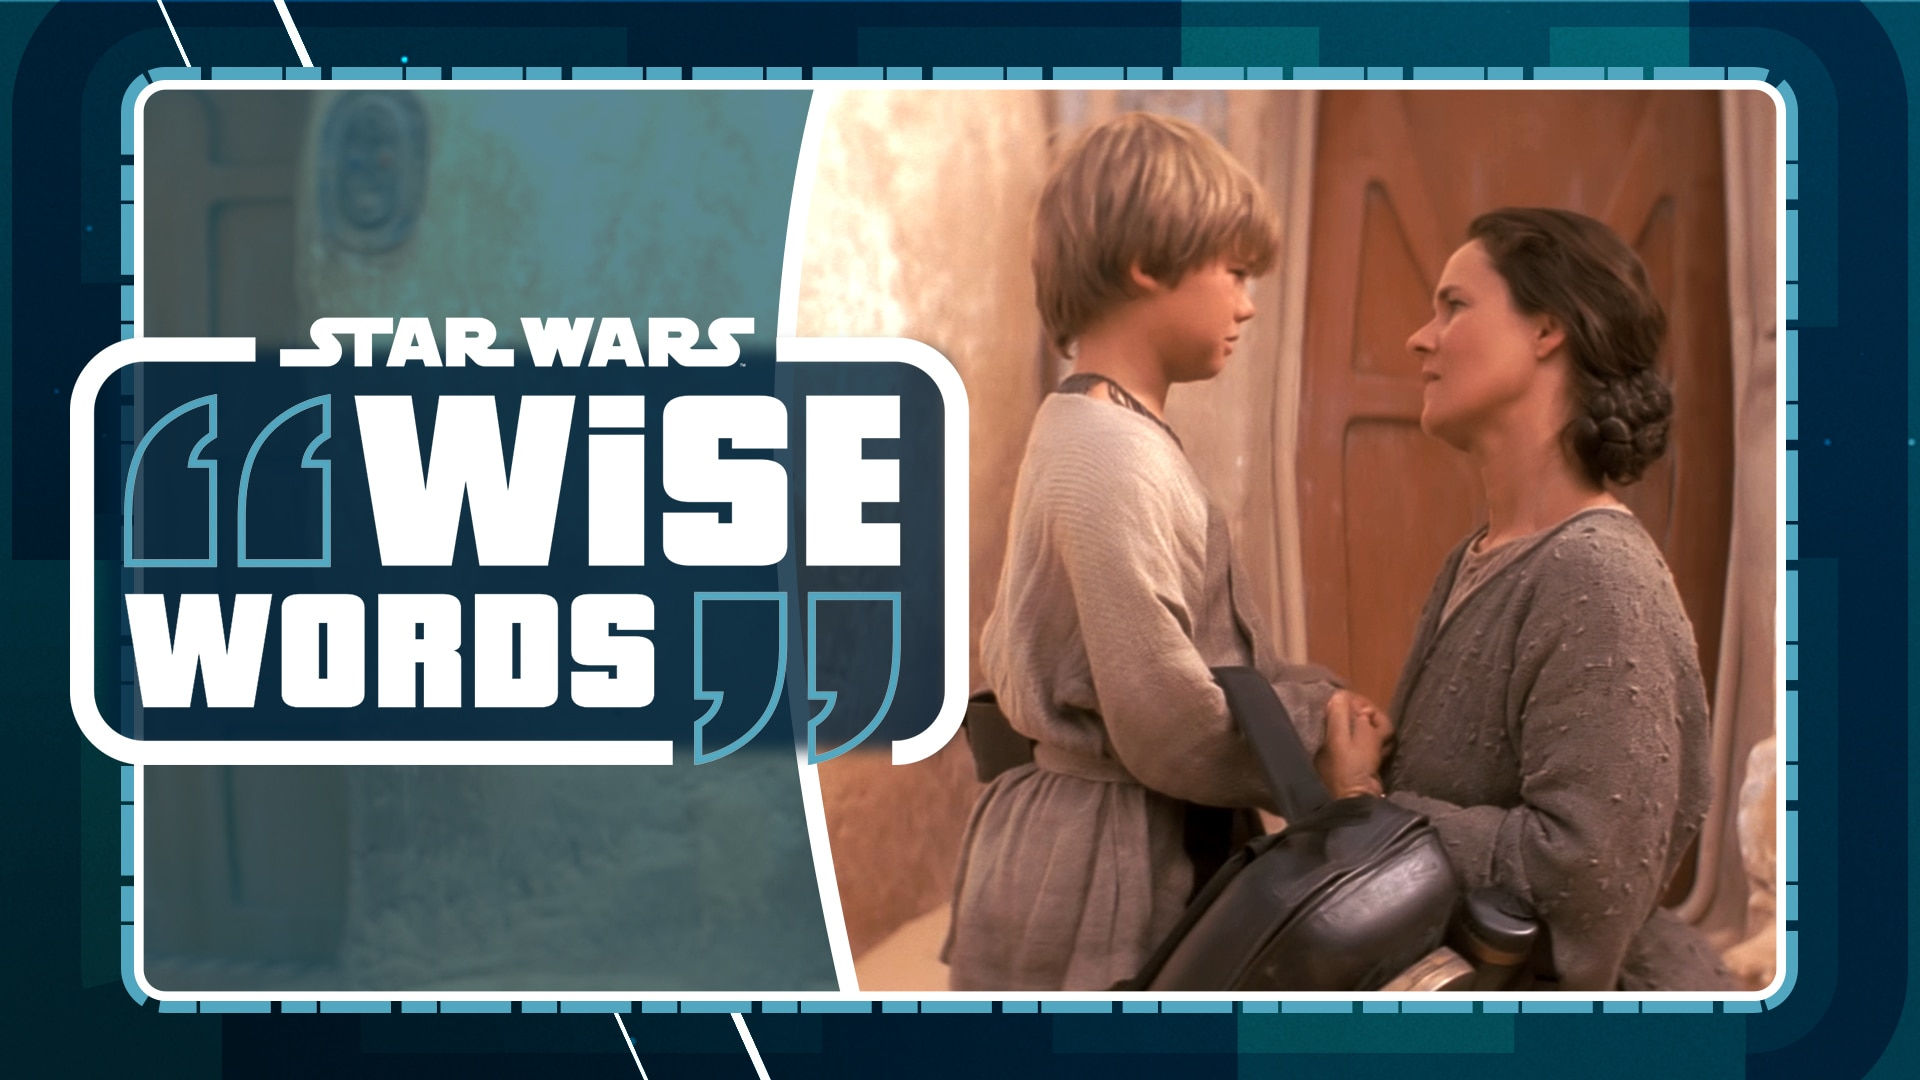 Shmi Skywalker | Star Wars Wise Words